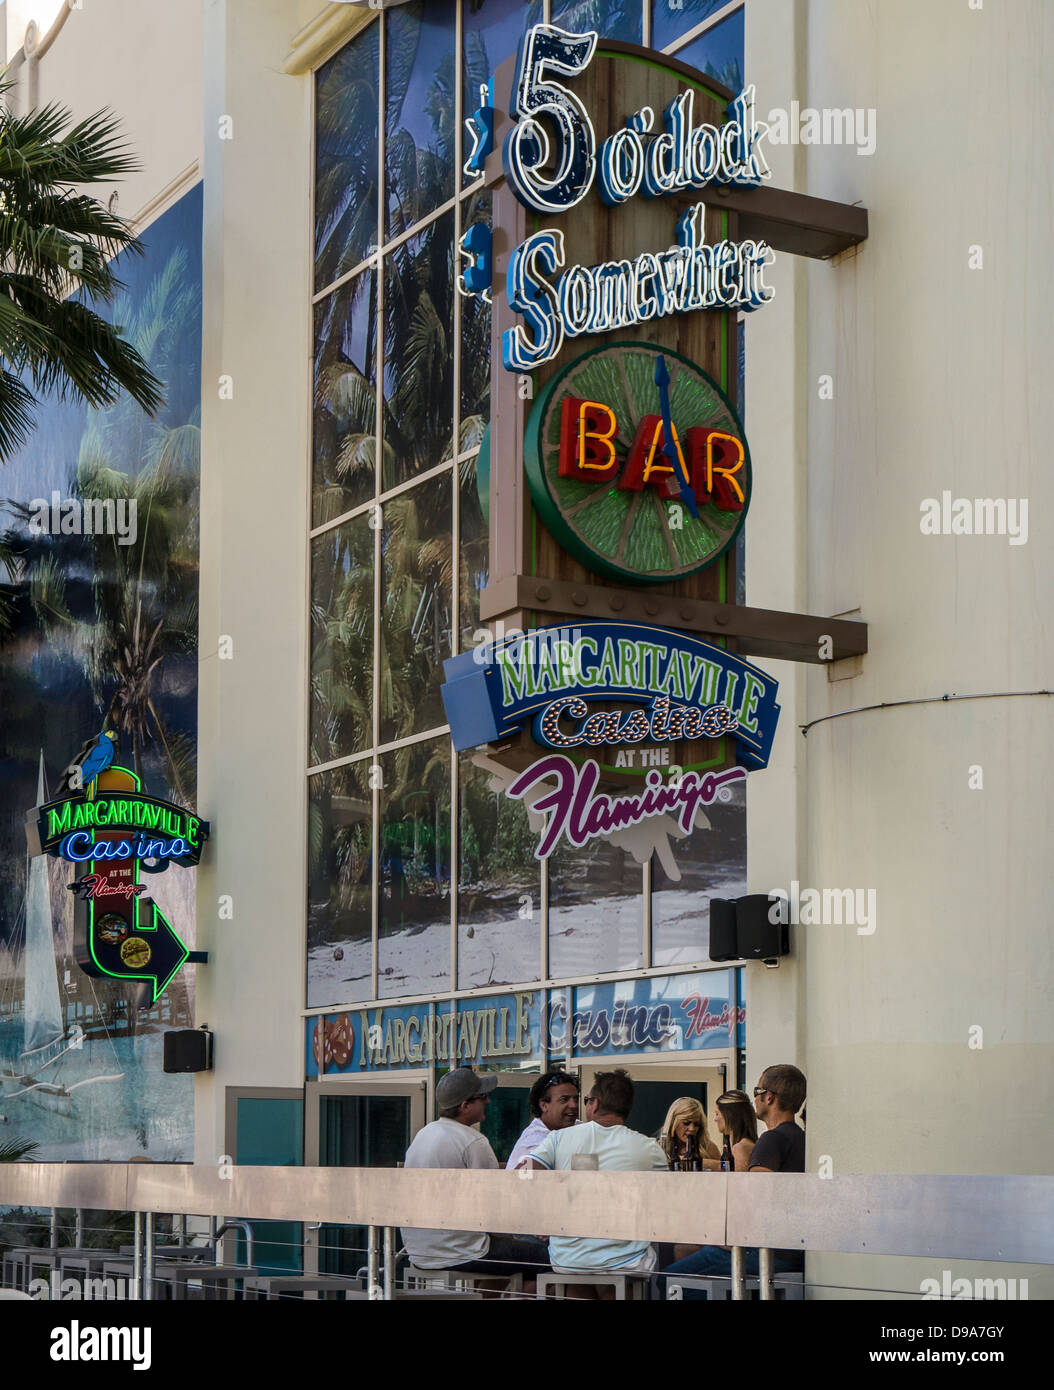 fc0e8402851 5 O Clock Somewhere Bar outside Flamingo Casino - Stock Image